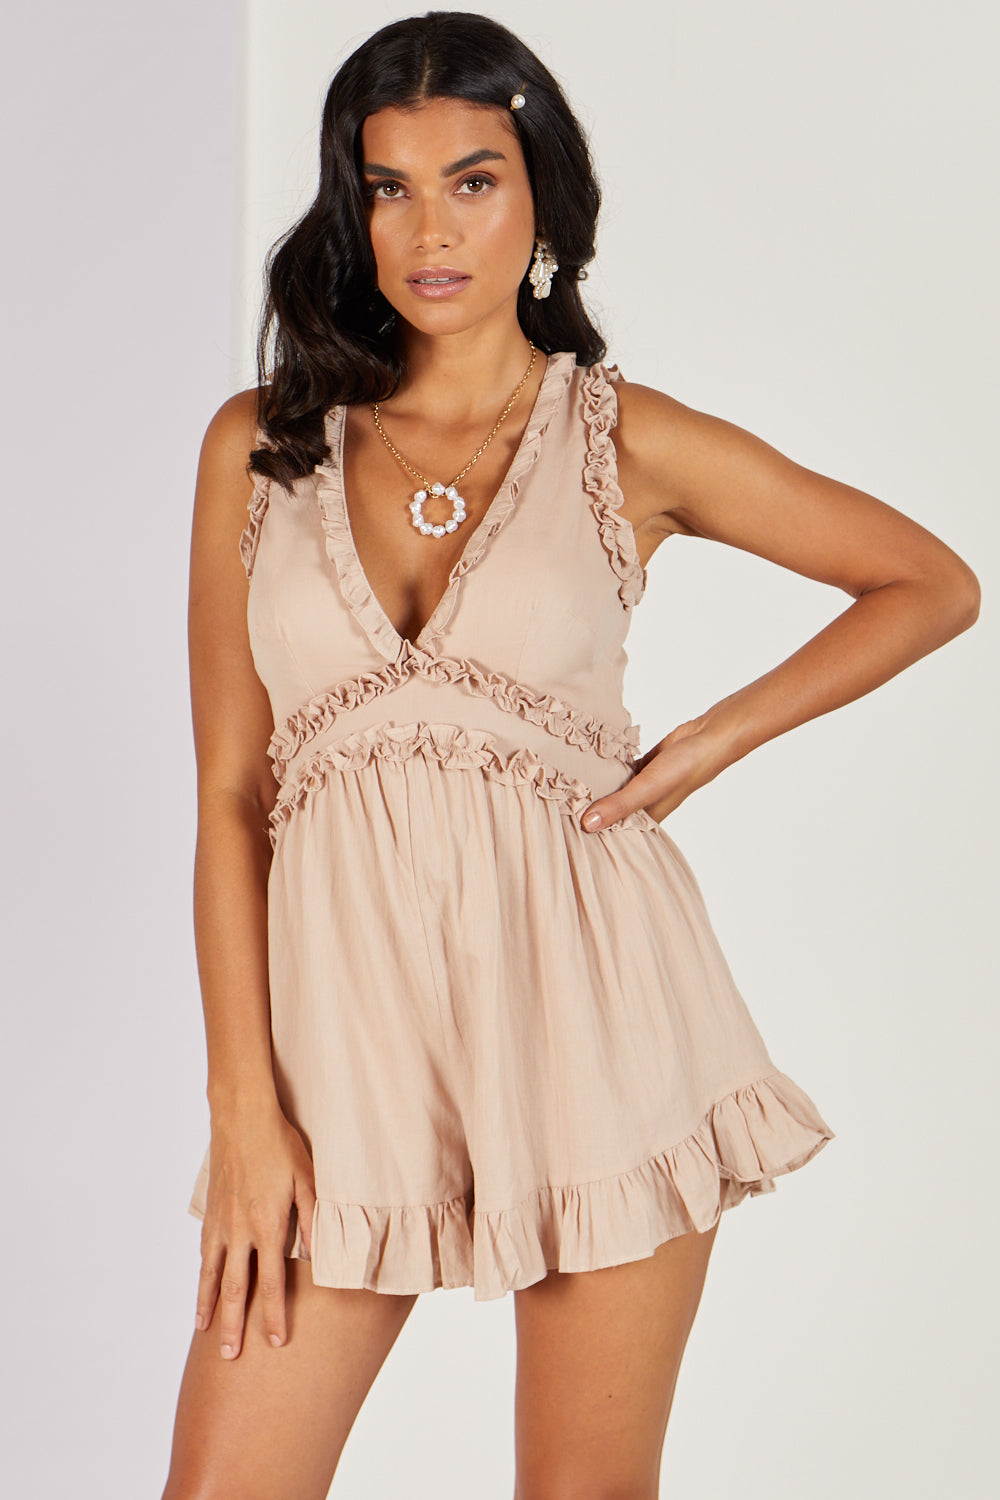 You Can Spoil Me Playsuit Mocha/Nude